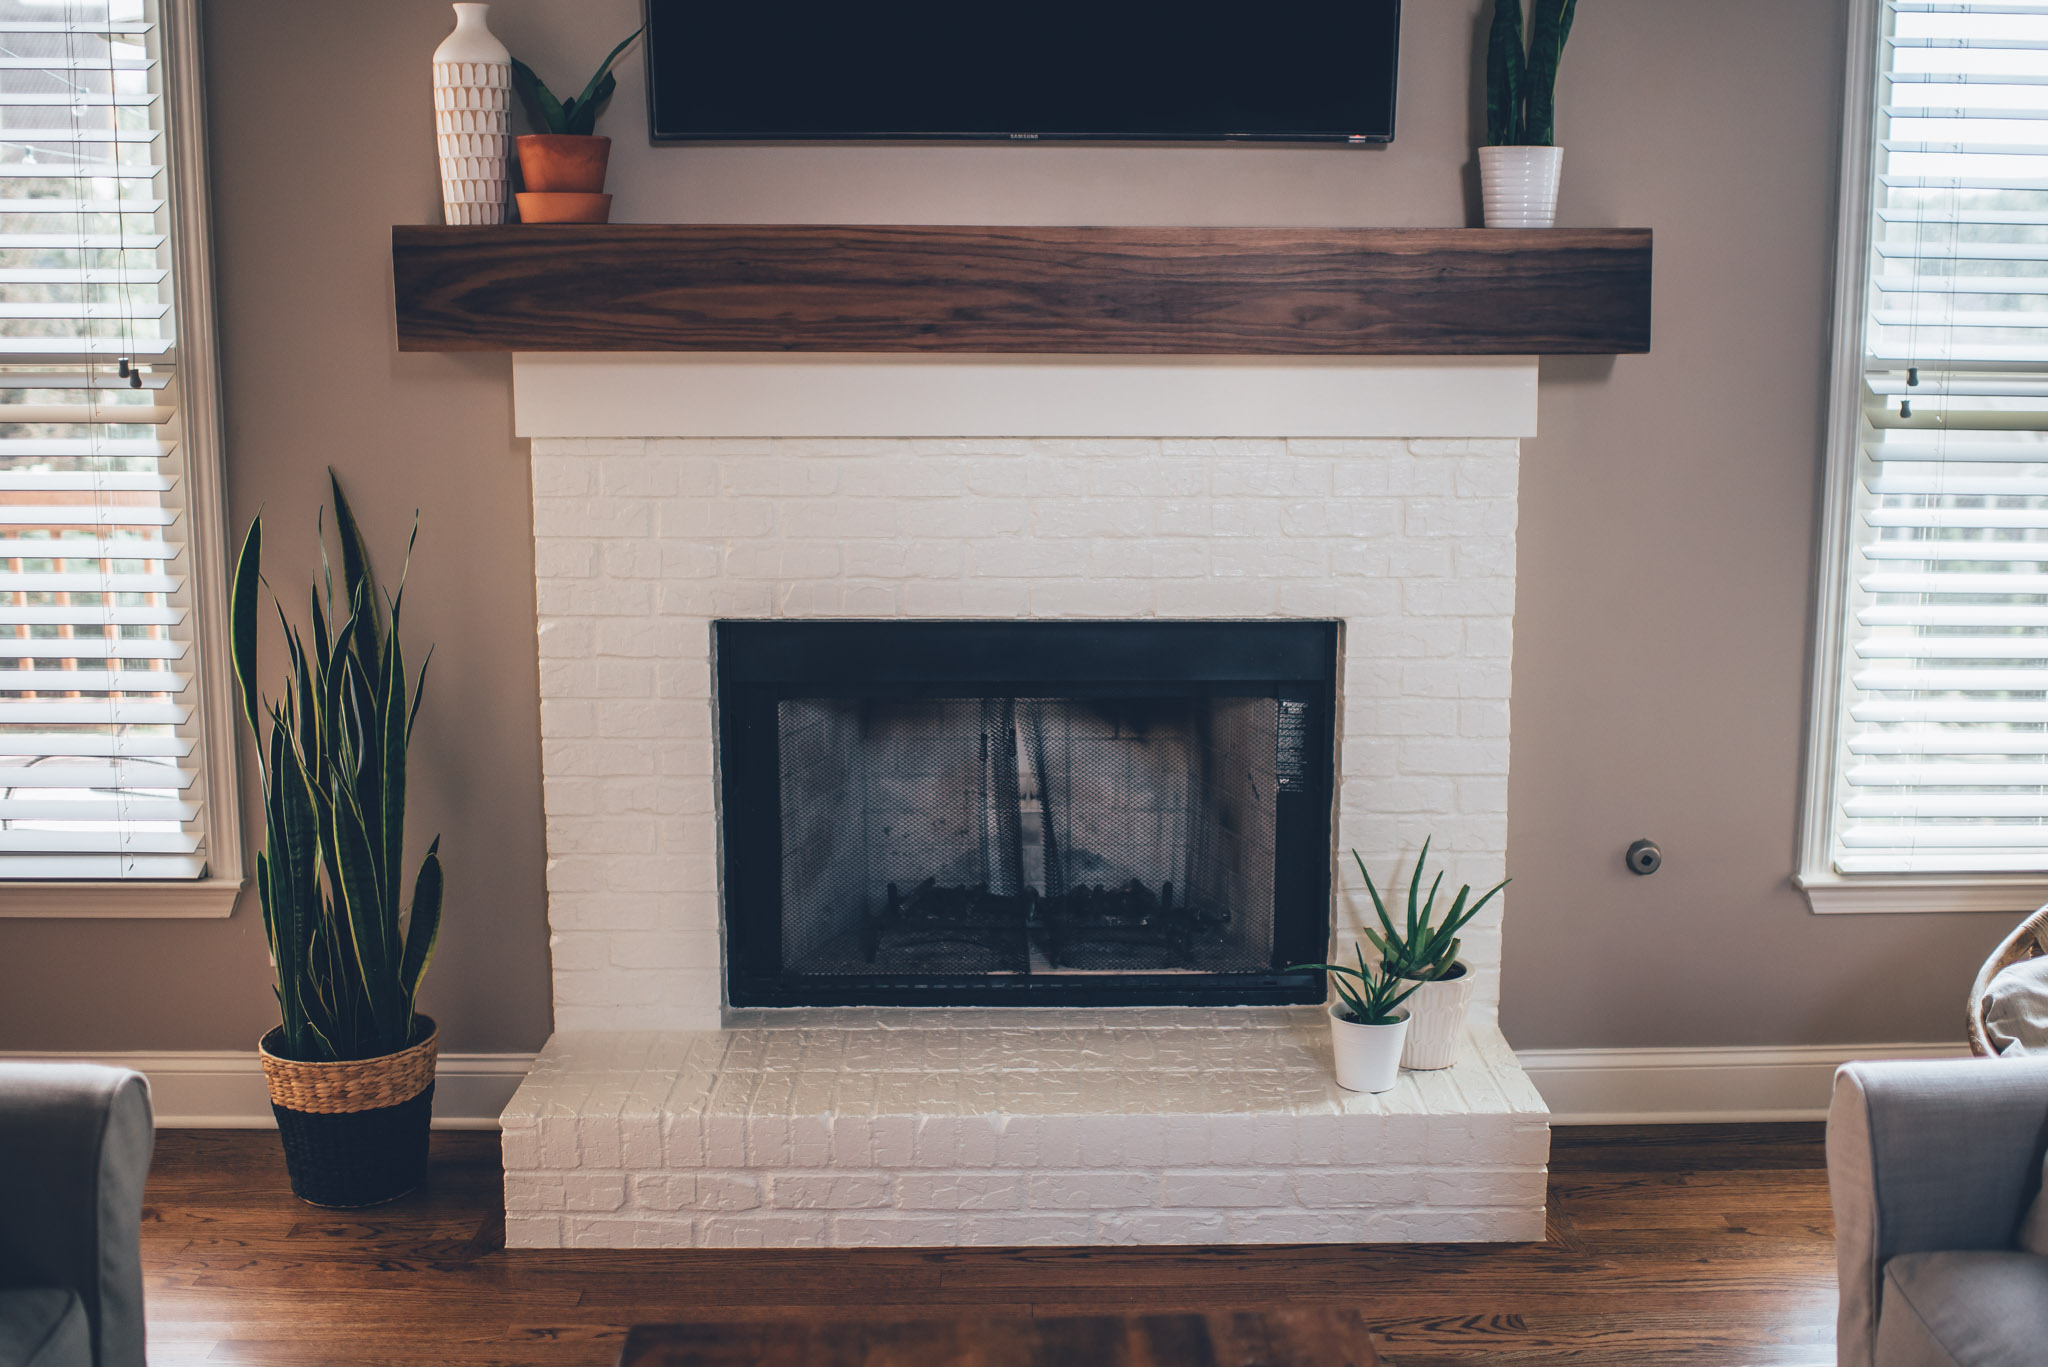 Mantel Kits For Brick Fireplace Mantel Decorating Ideas For Brick Fireplace